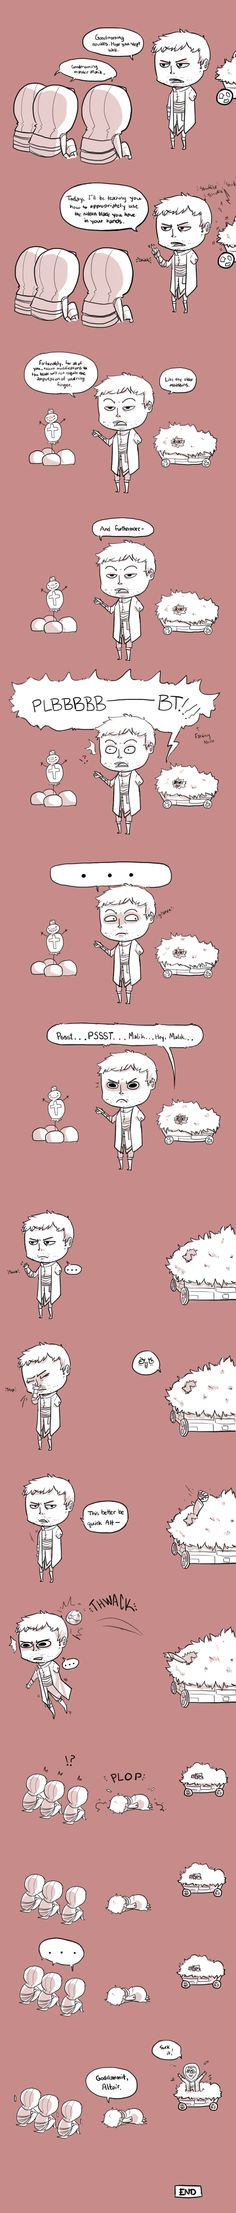 This is how i feel some times when talking to people then mathew (my best friend) says or does some thing random